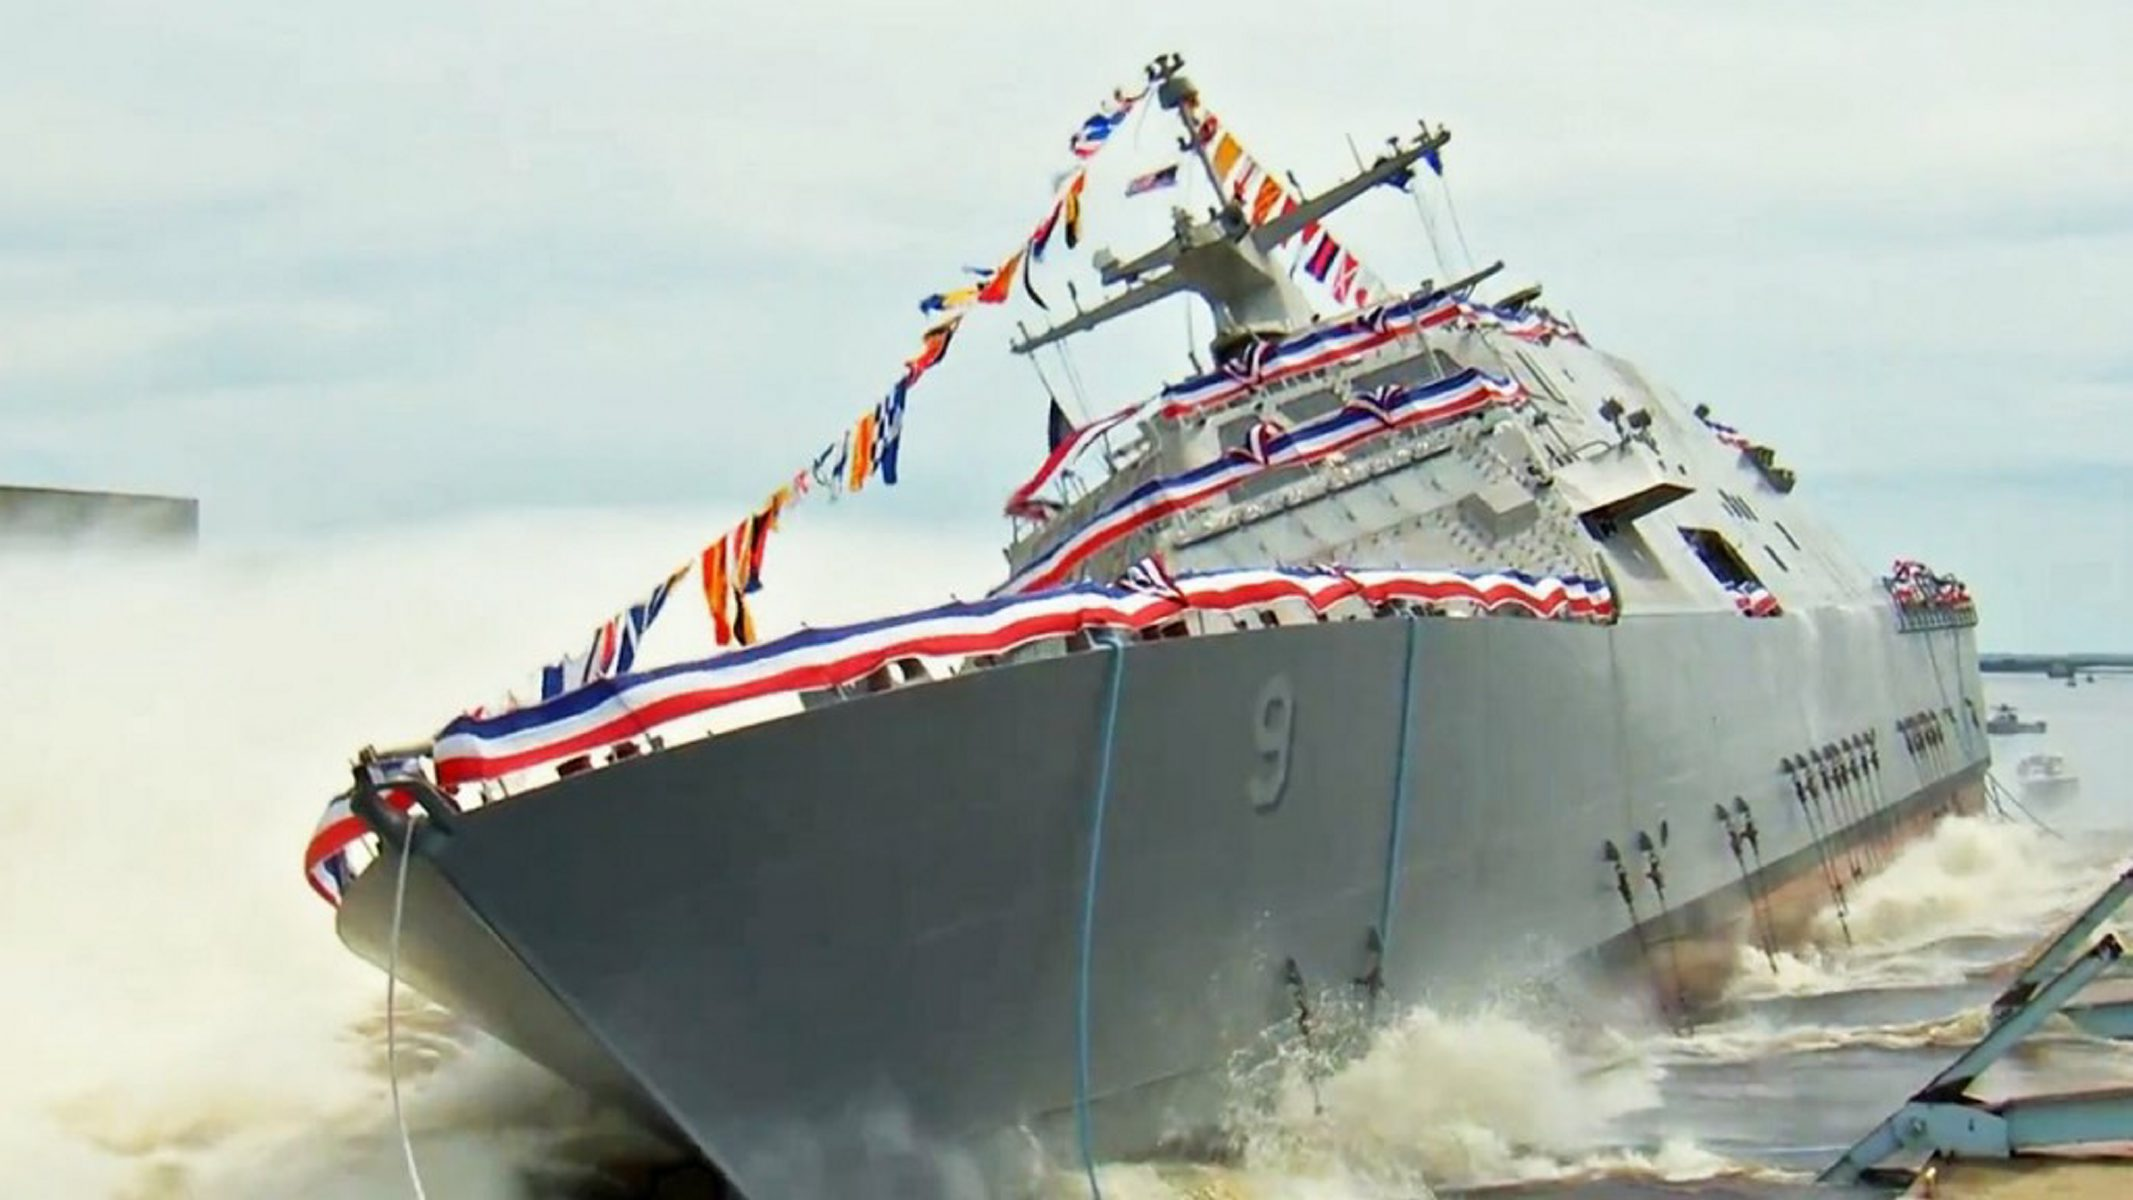 The new USS Little Rock will be commissioned in Buffalo on Sept. 16. (Image from Lockheed Martin)